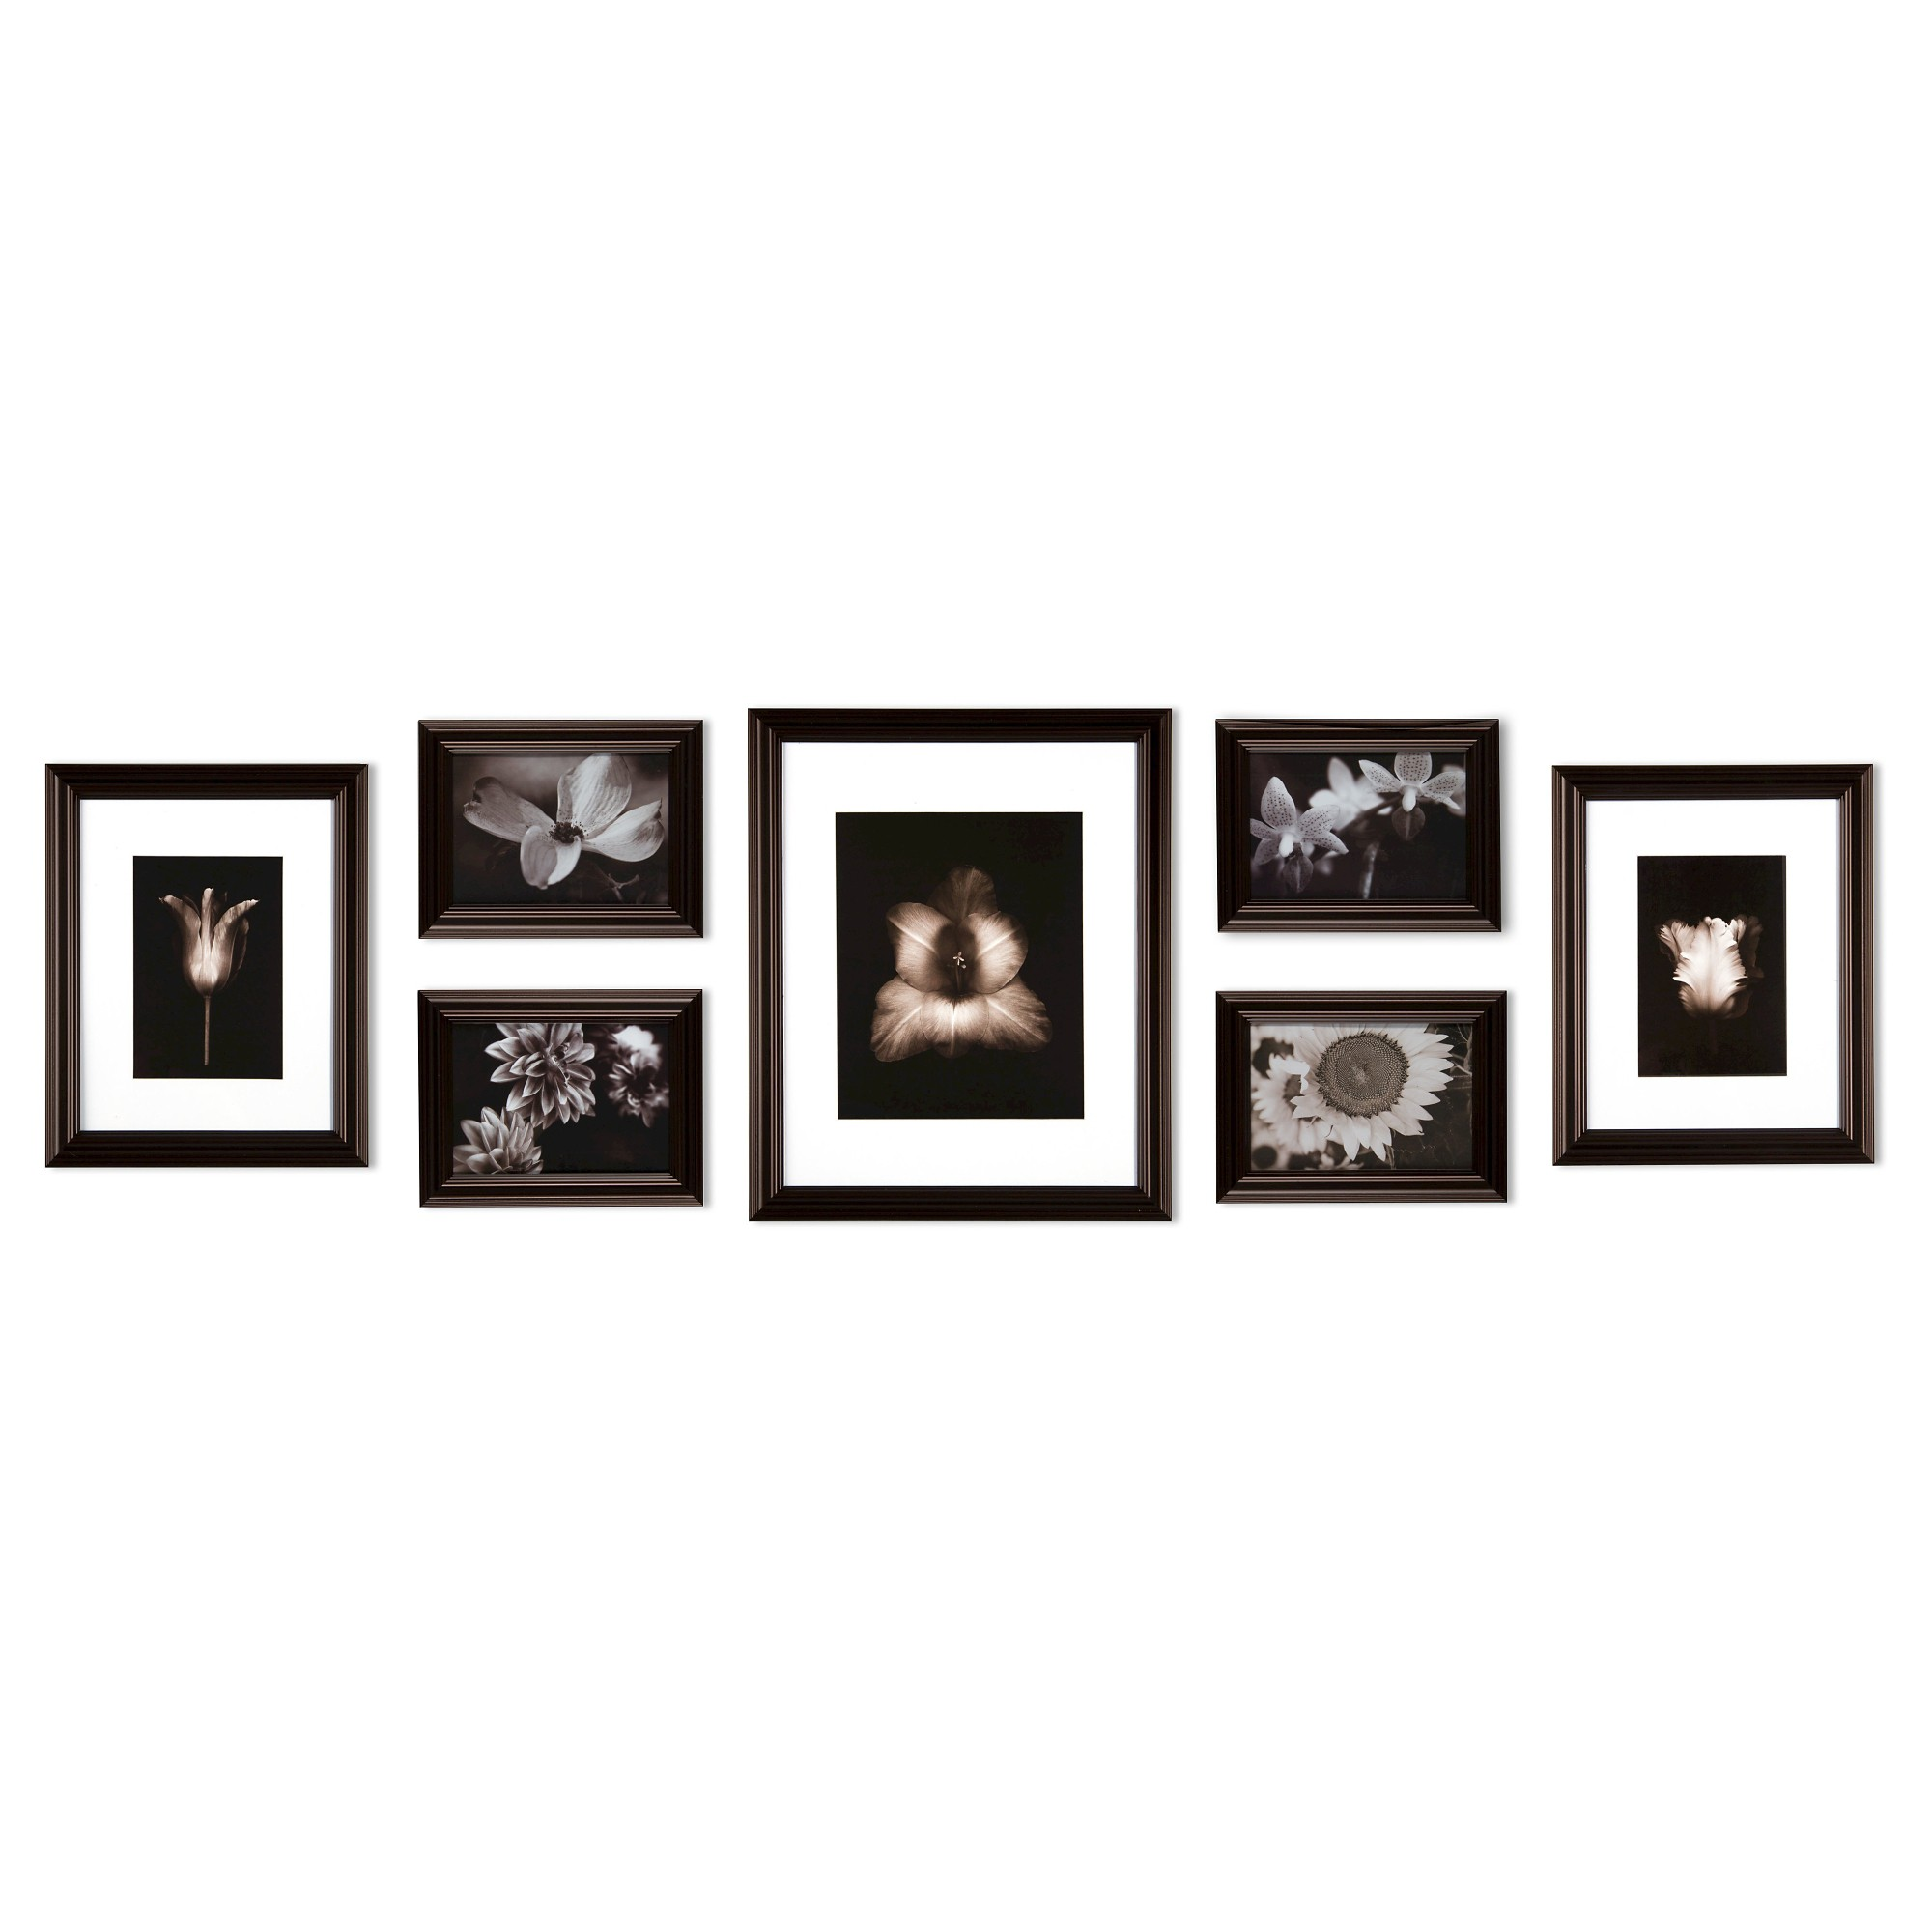 Gallery Perfect 7 Piece Multi Size Wall Frame Set Black Brown Wall Frame Set Gallery Wall Picture Frames Picture Frame Sets